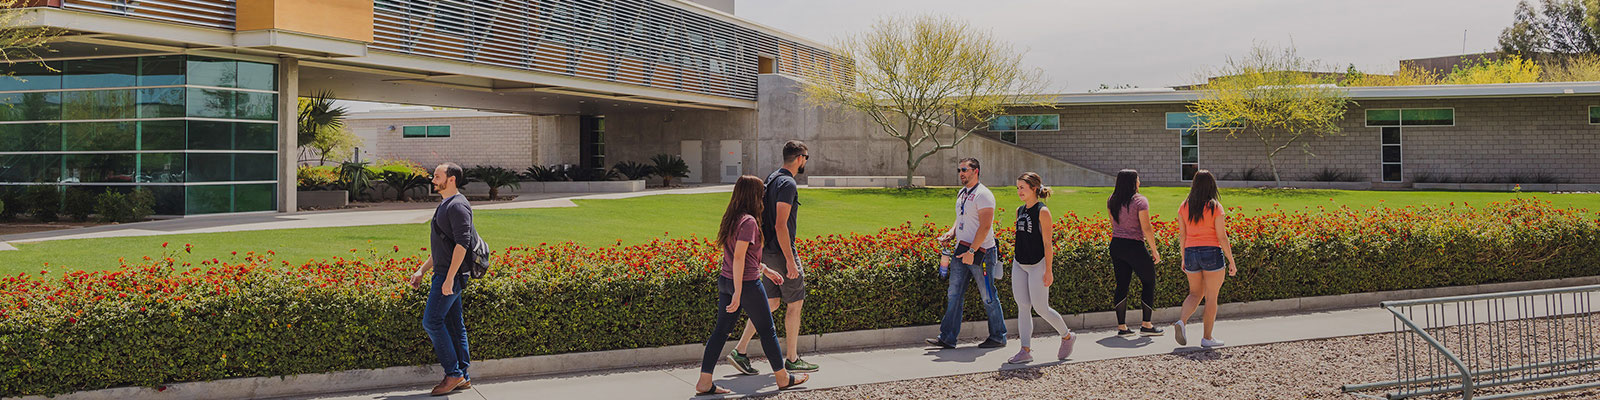 Maricopa Community Colleges   10 colleges  Unlimited